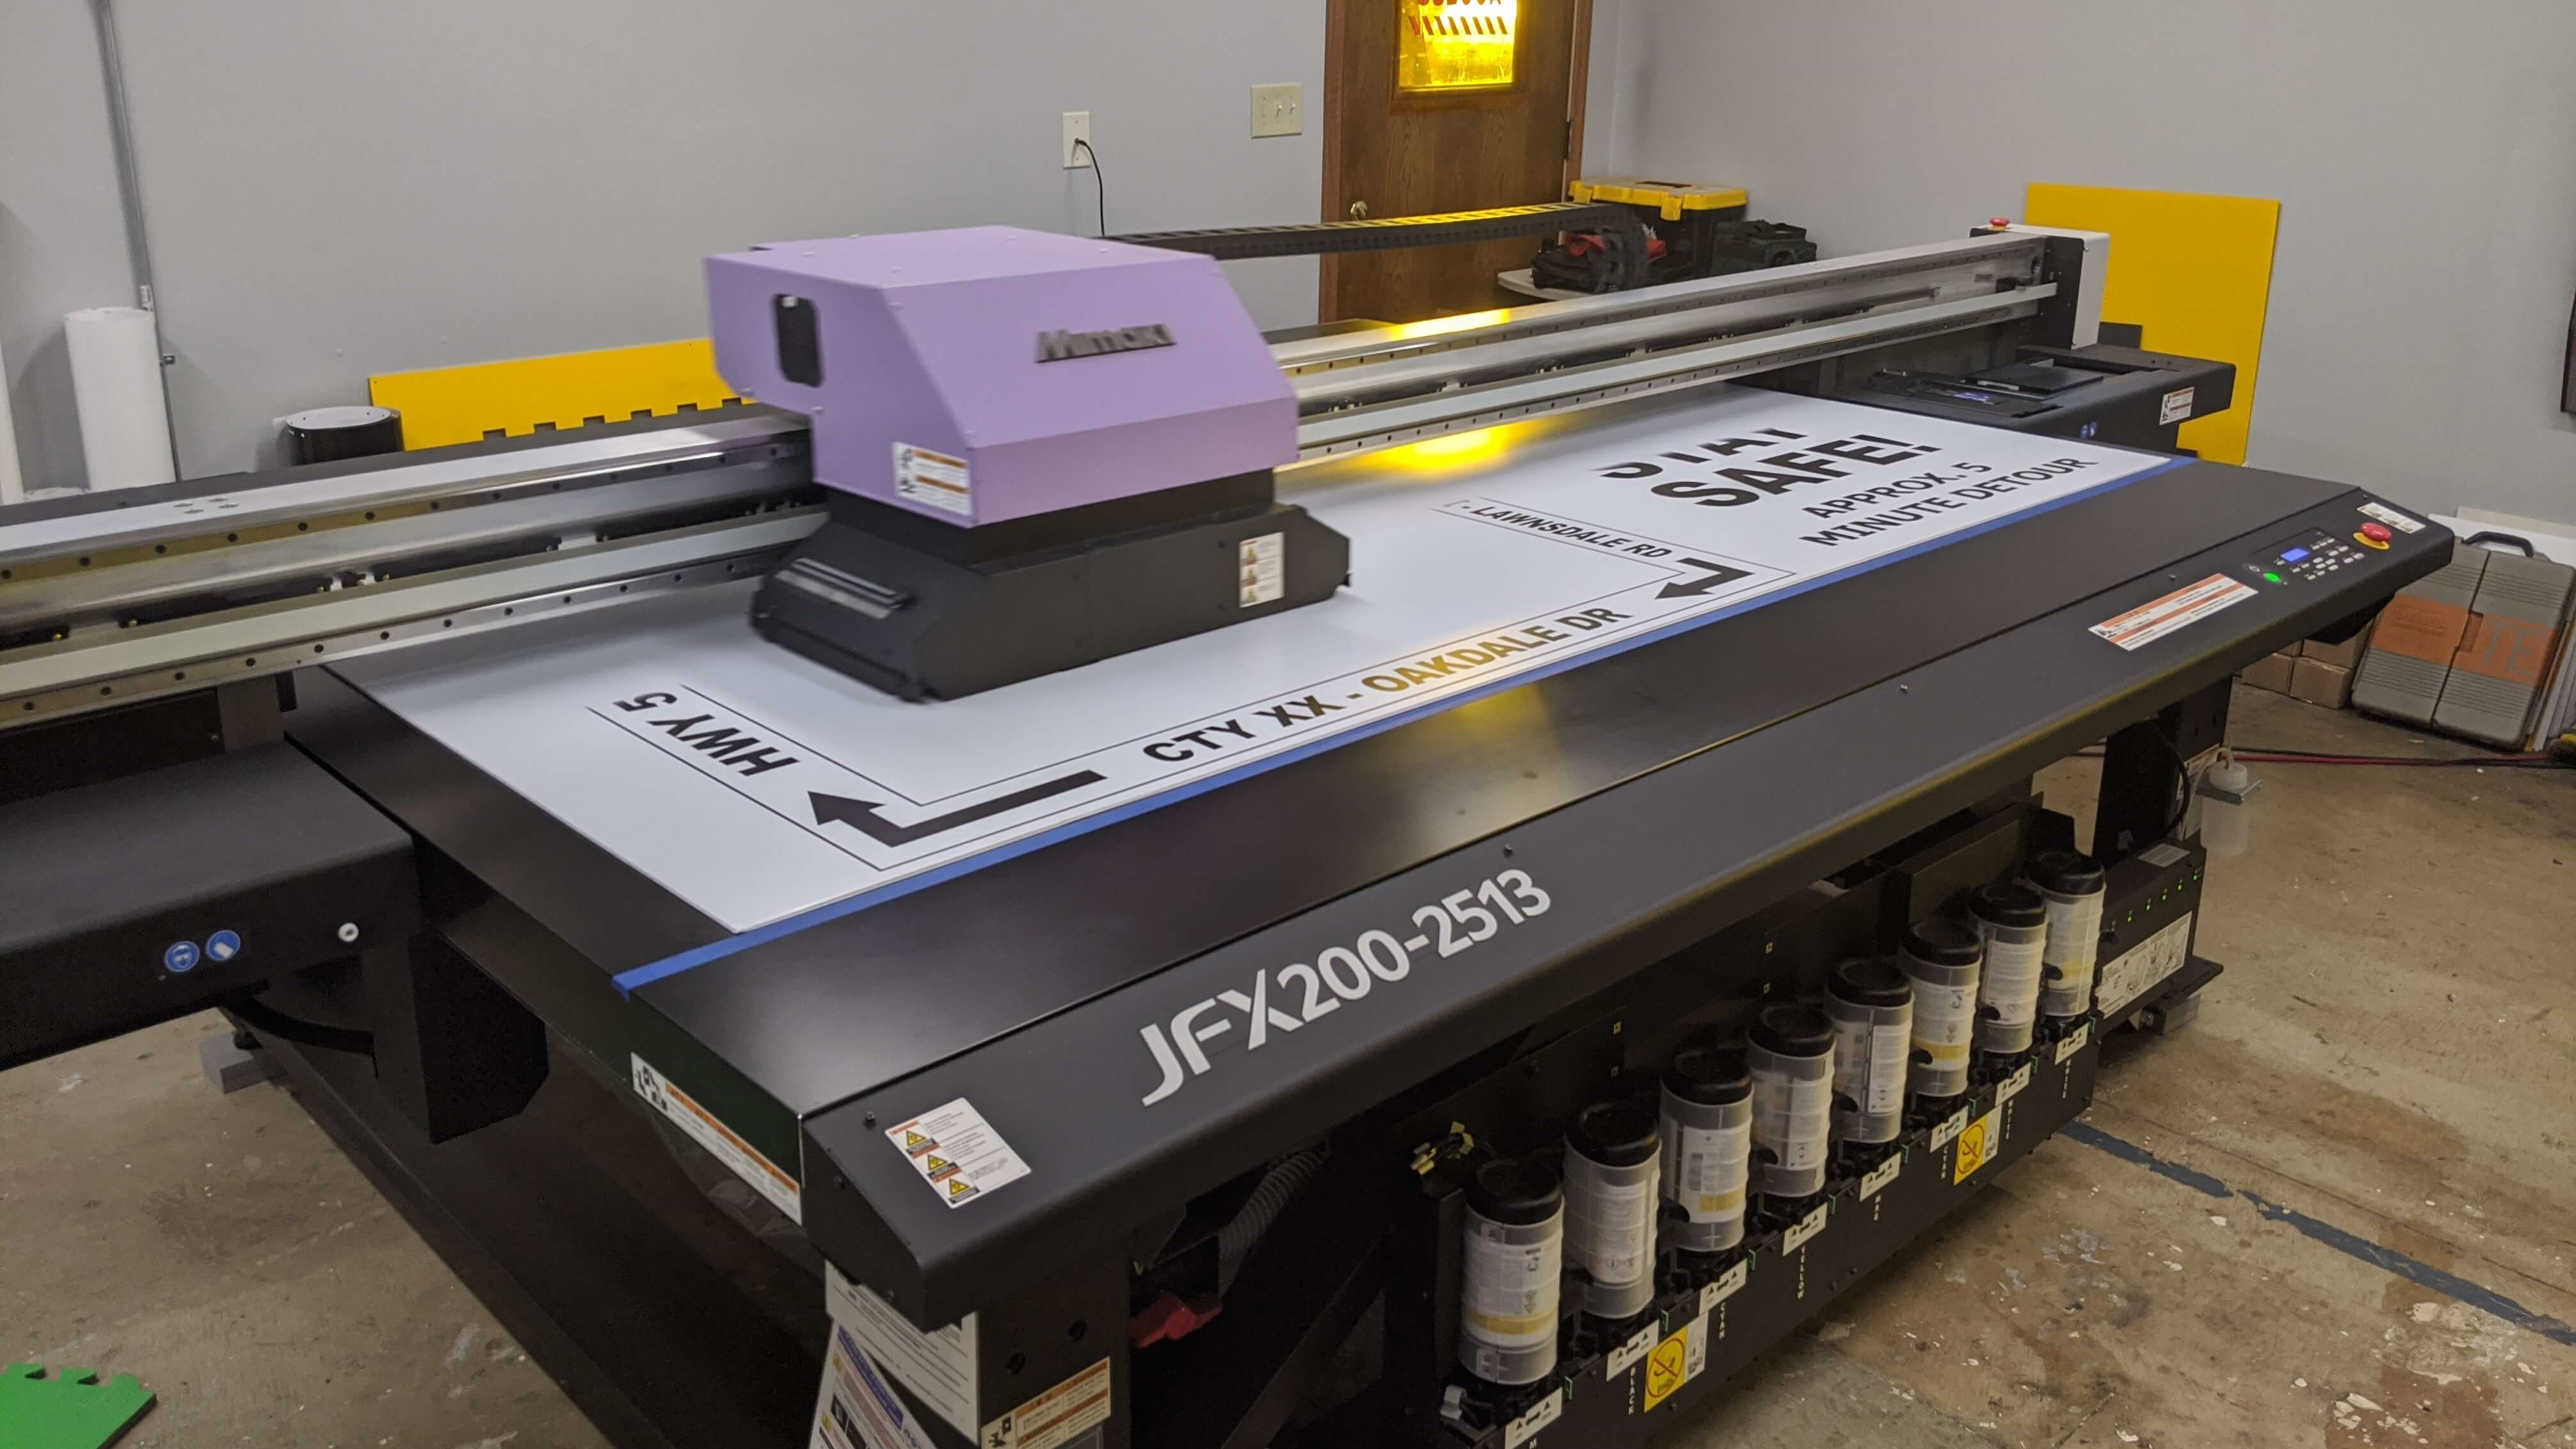 Our Mimaki JFX 2000 Printing out a large sign to be used on a road construction site